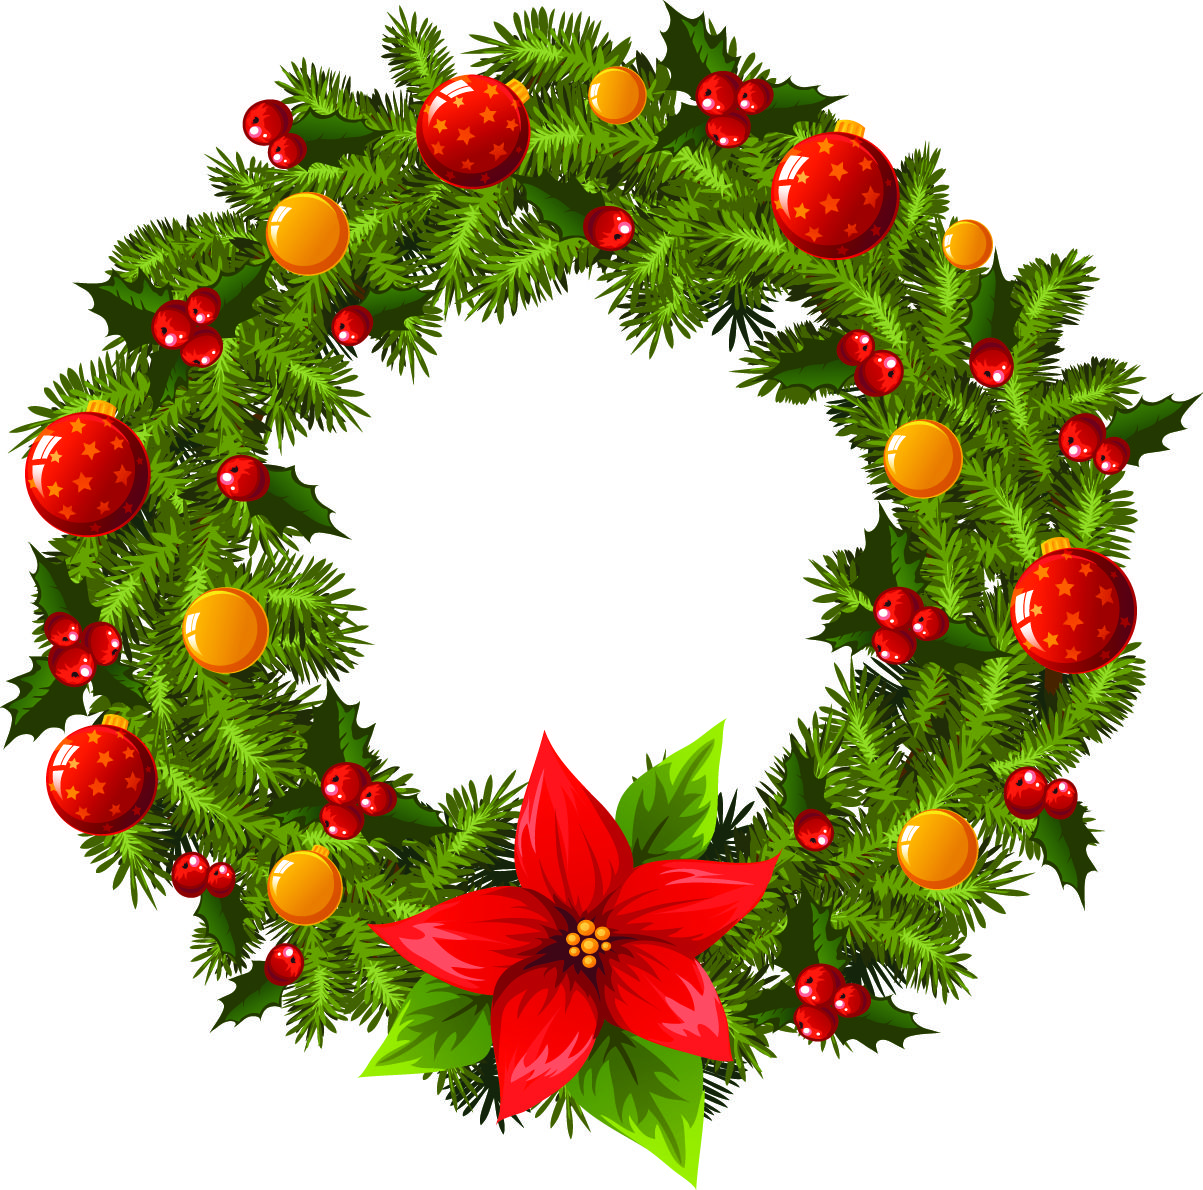 9 Christmas Wreath Vector Free Images Christmas vectors